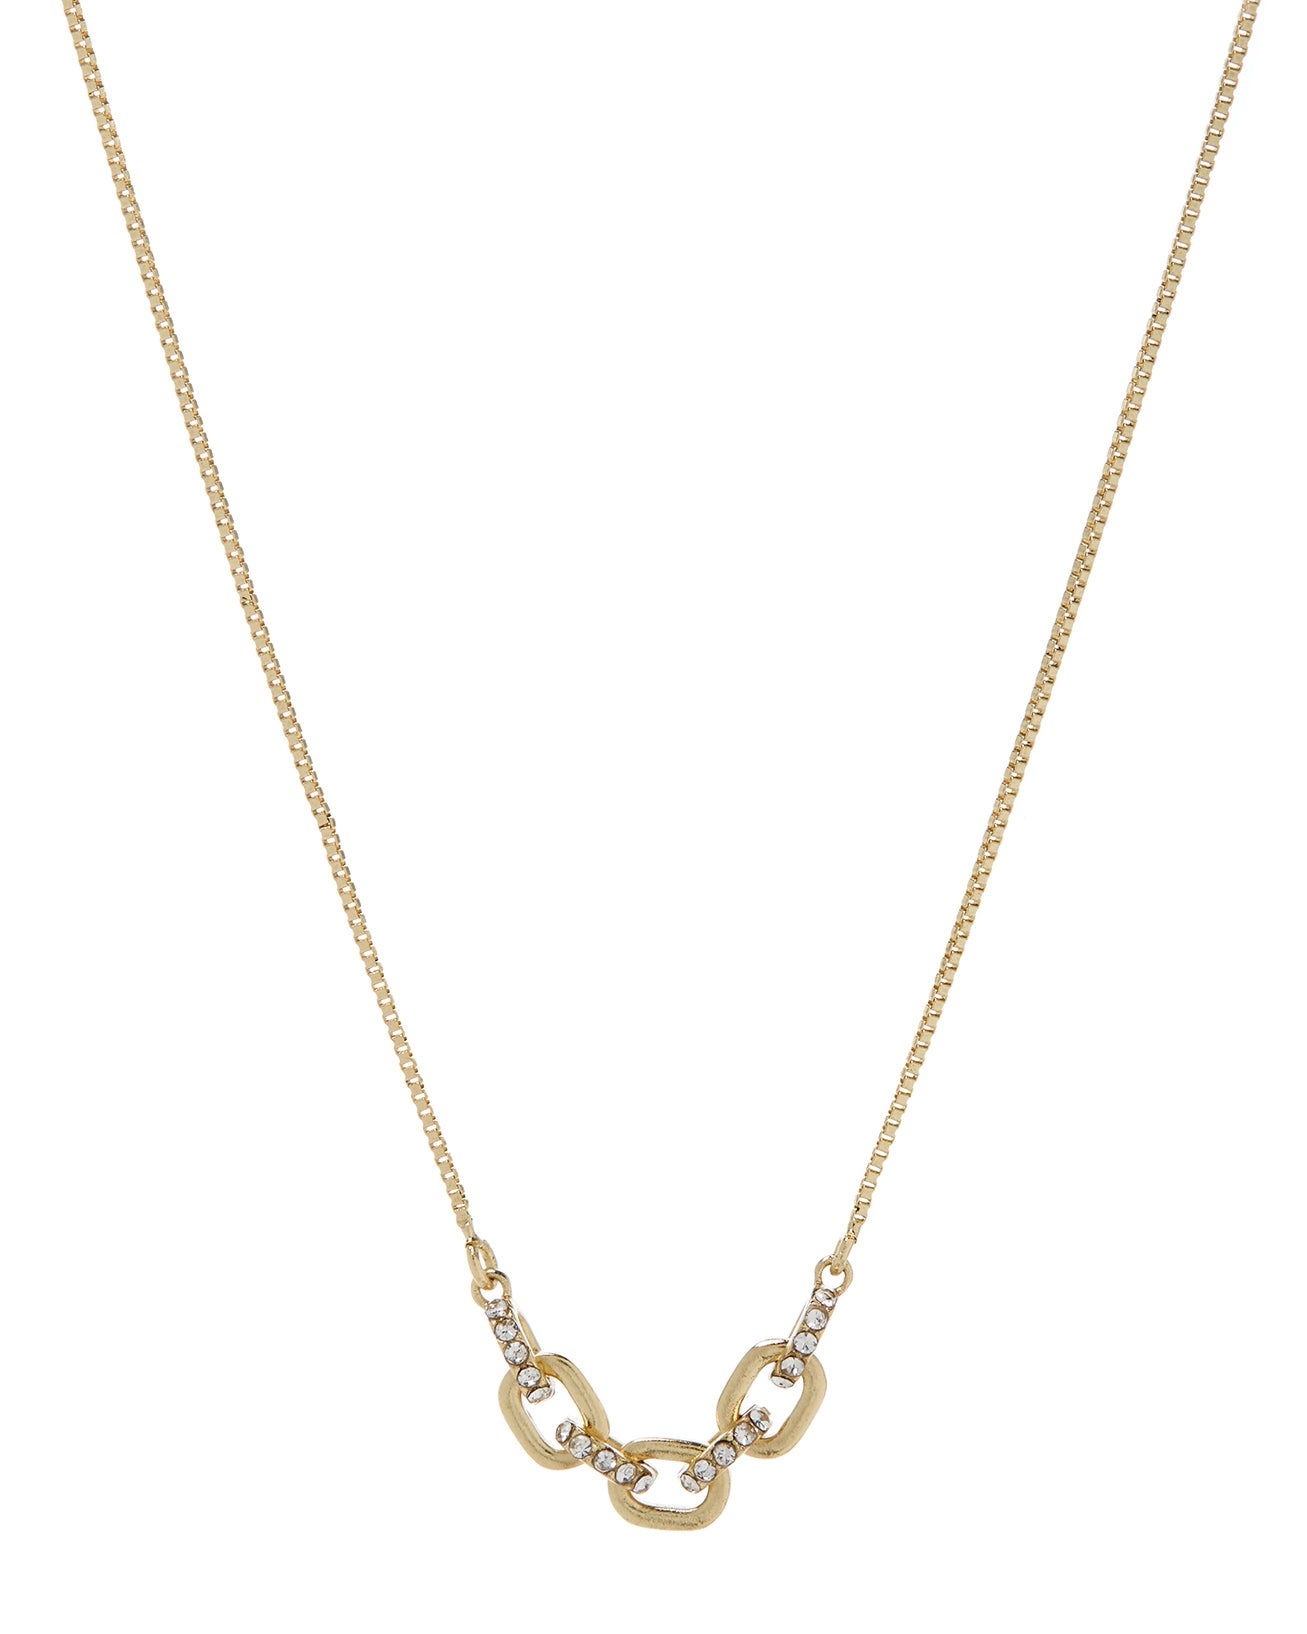 The Blair Chain Charm Necklace - Gold